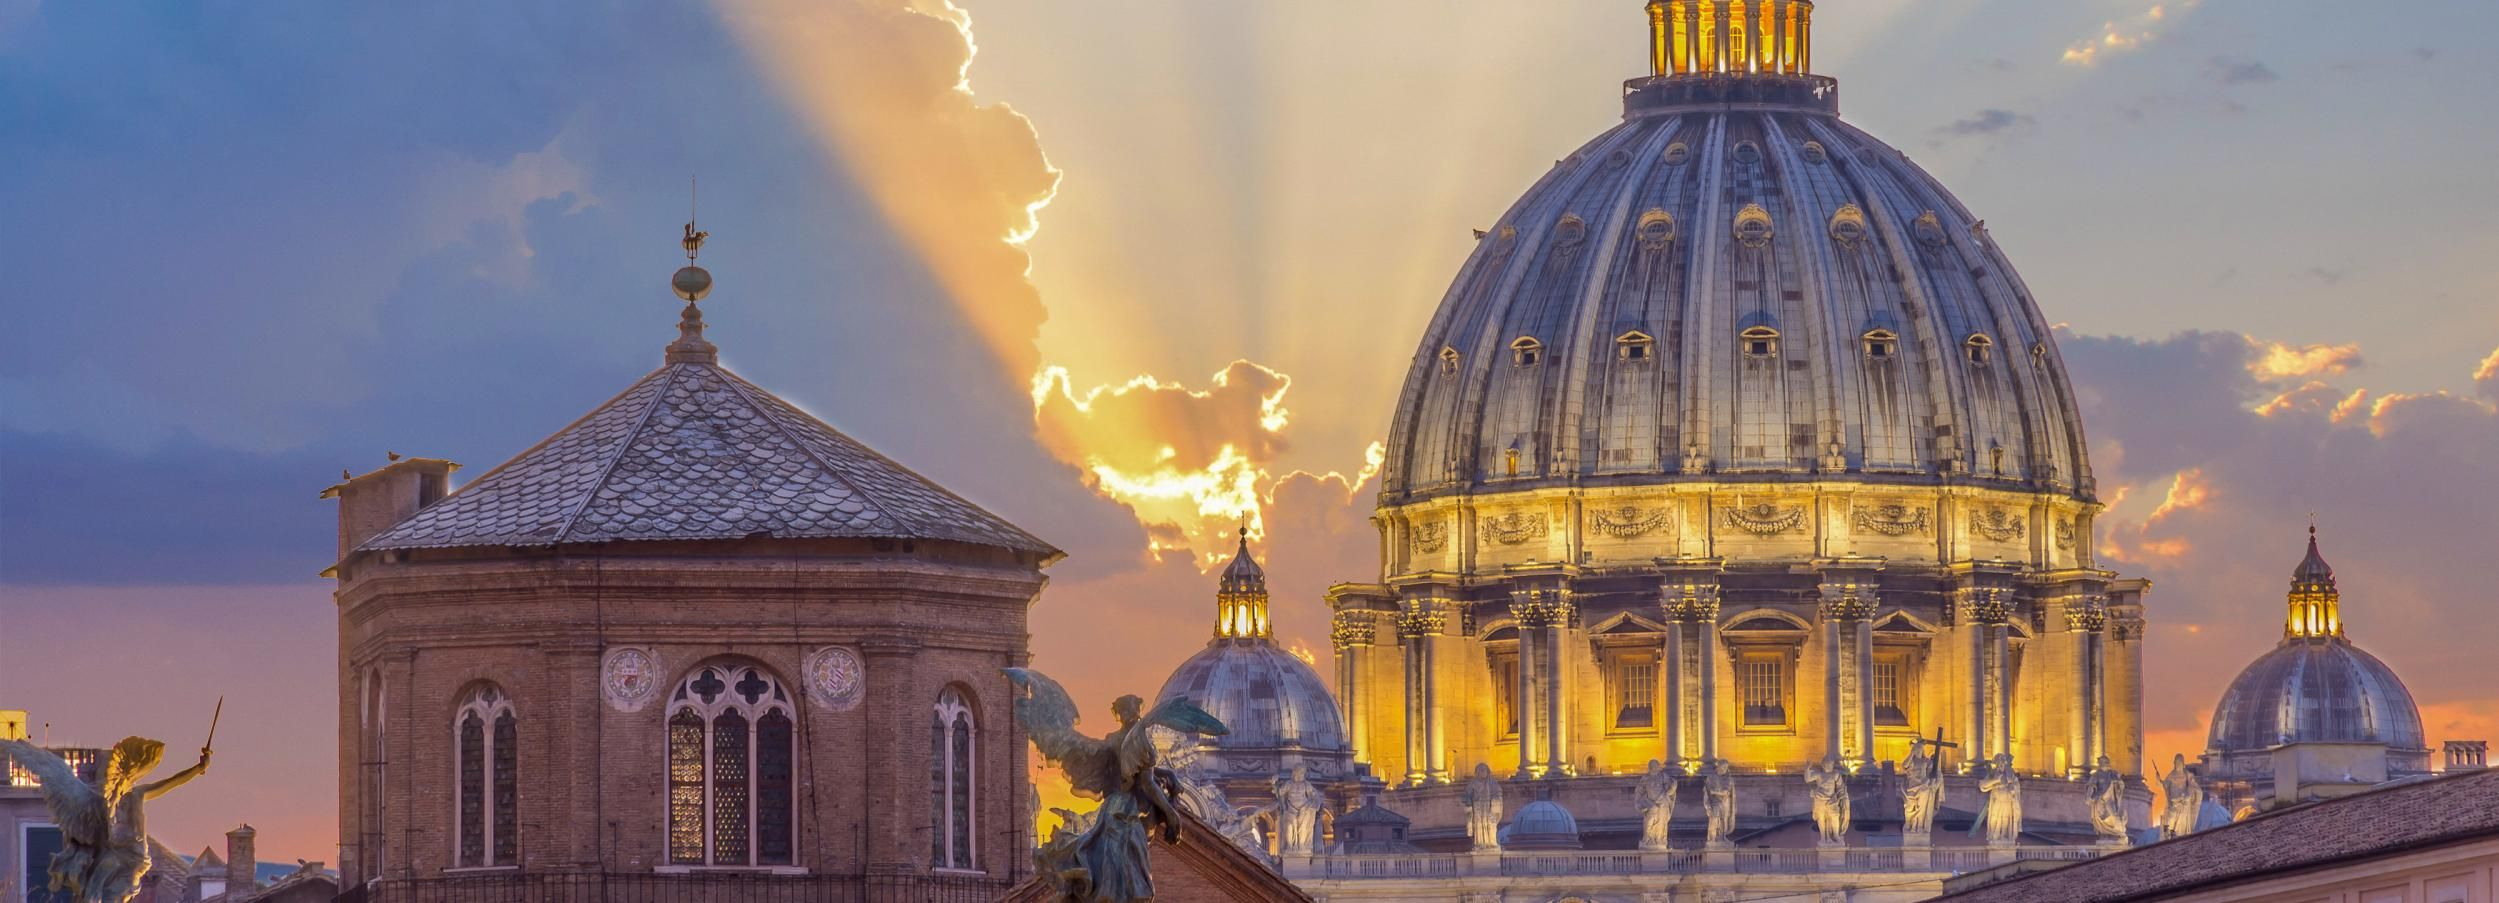 St. Peter's Basilica Guided Tour with Dome Climb